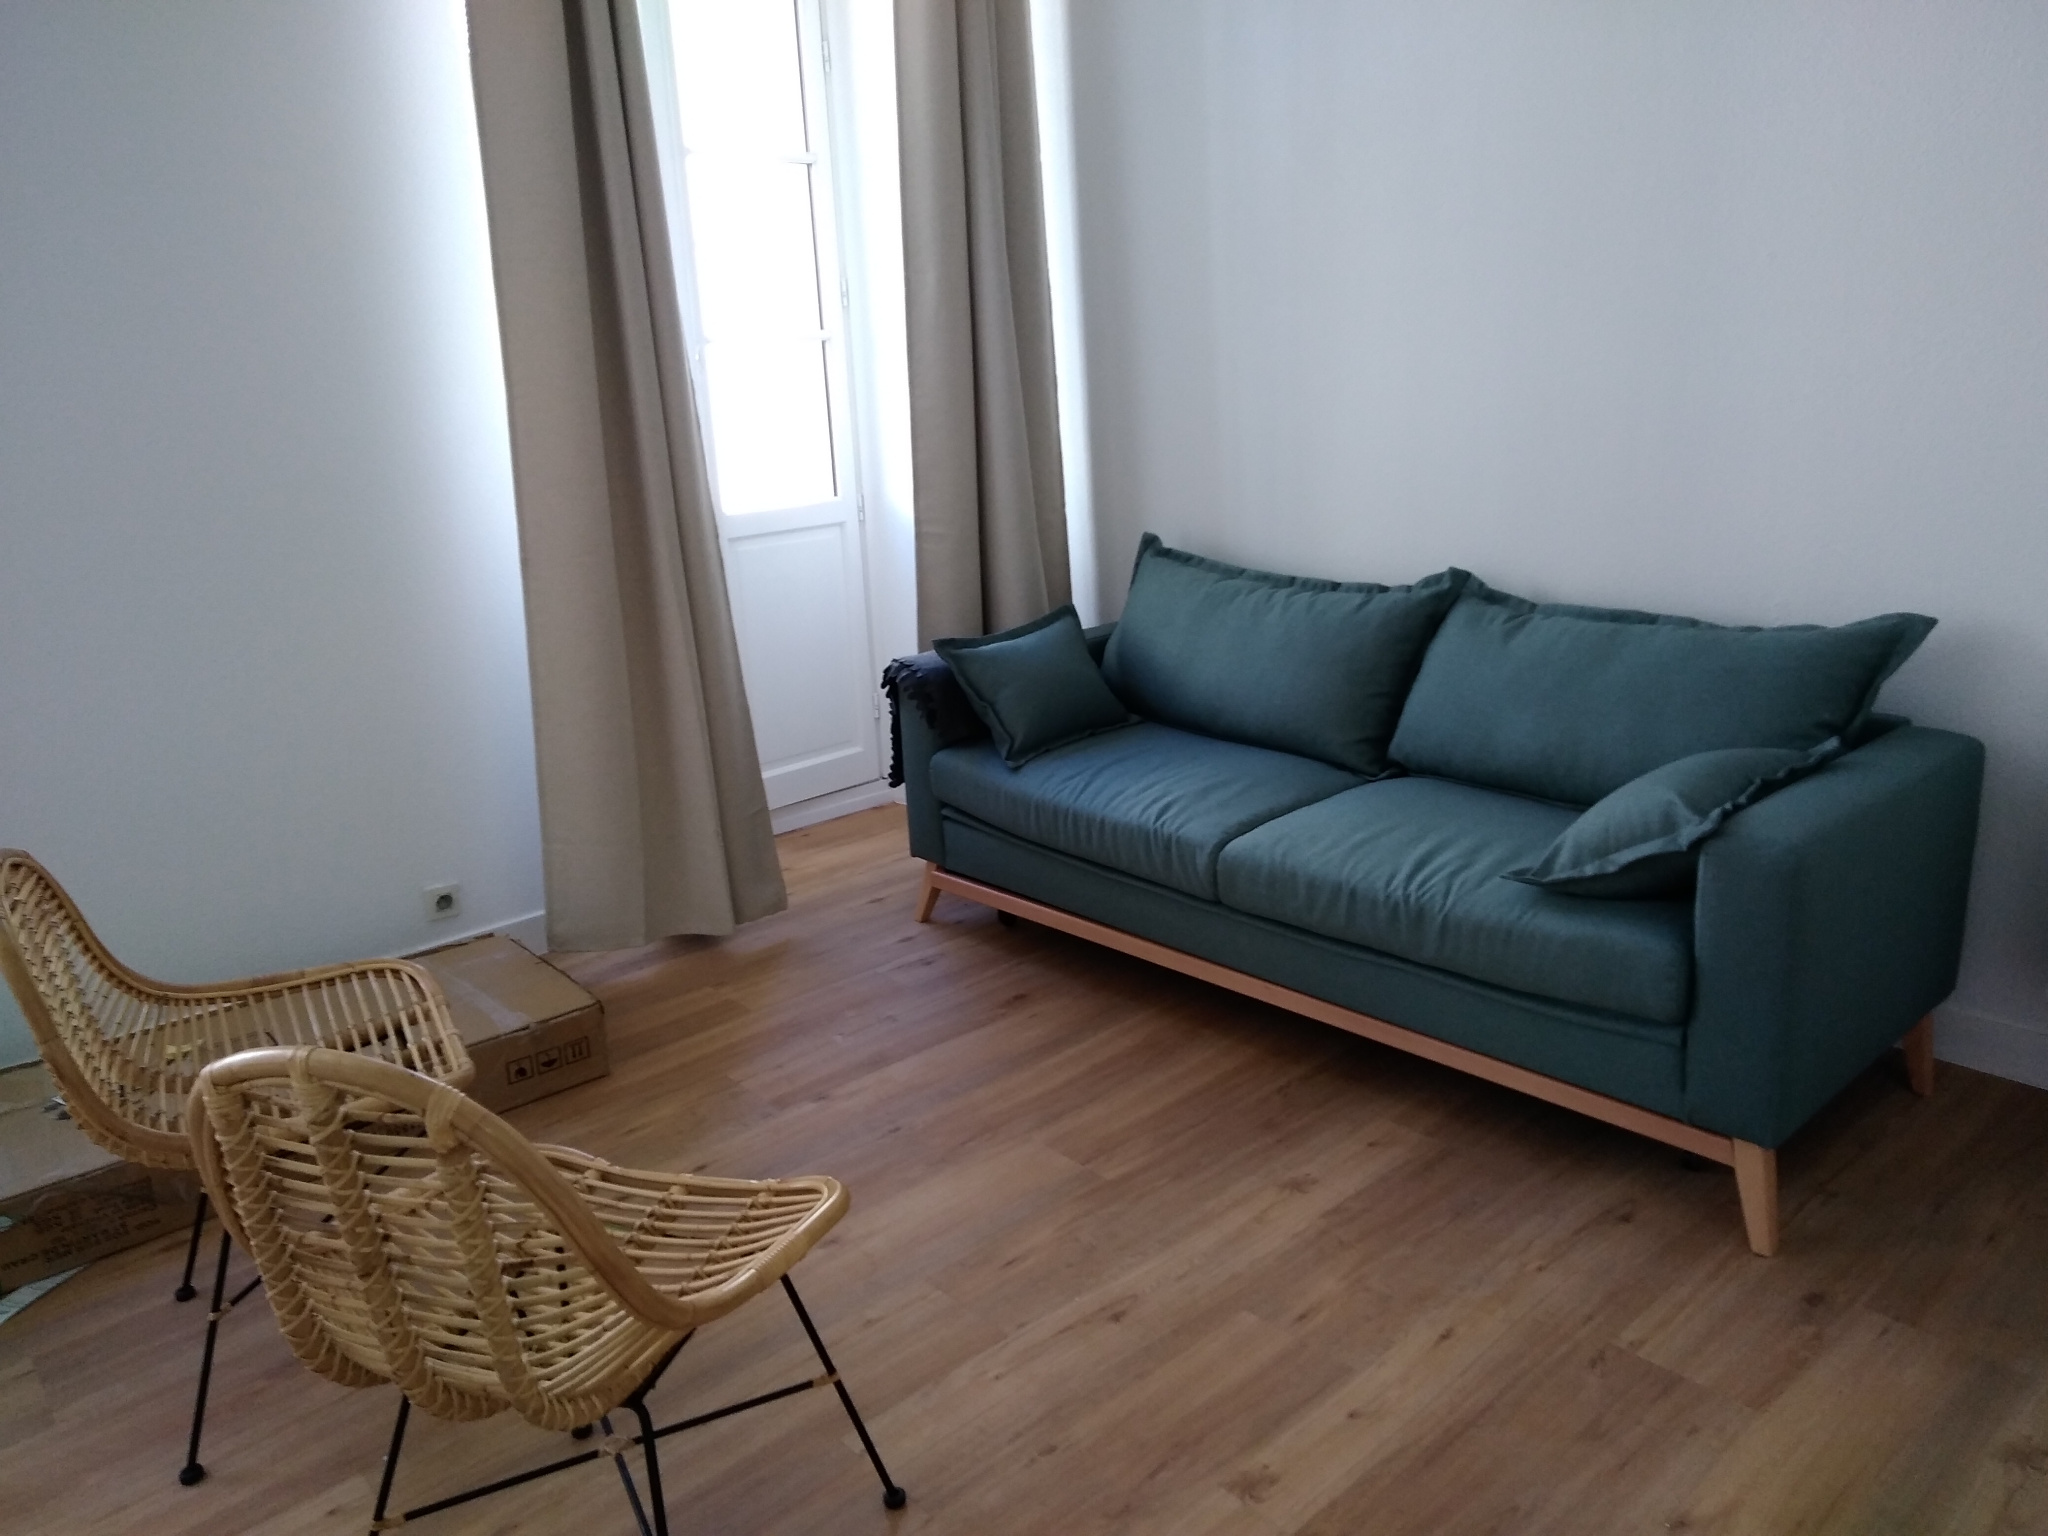 Location bordeaux saint michel appartement t2 meubl - Location appartement meuble bordeaux ...